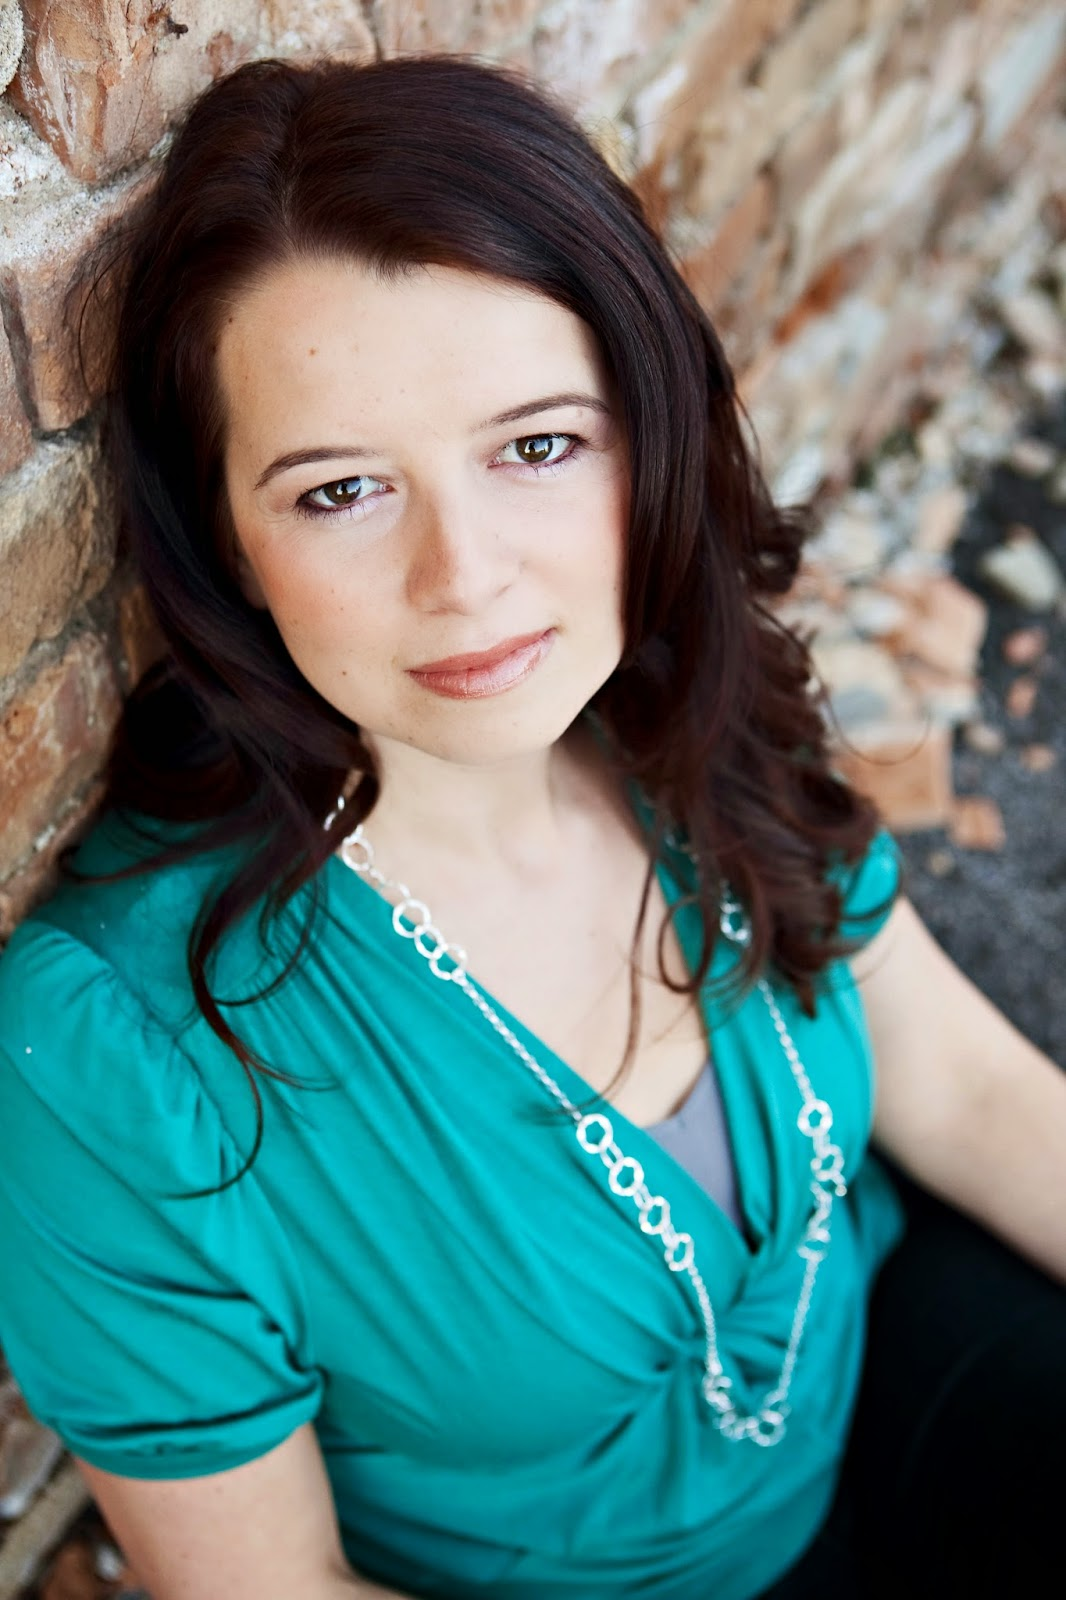 bree despain author photo